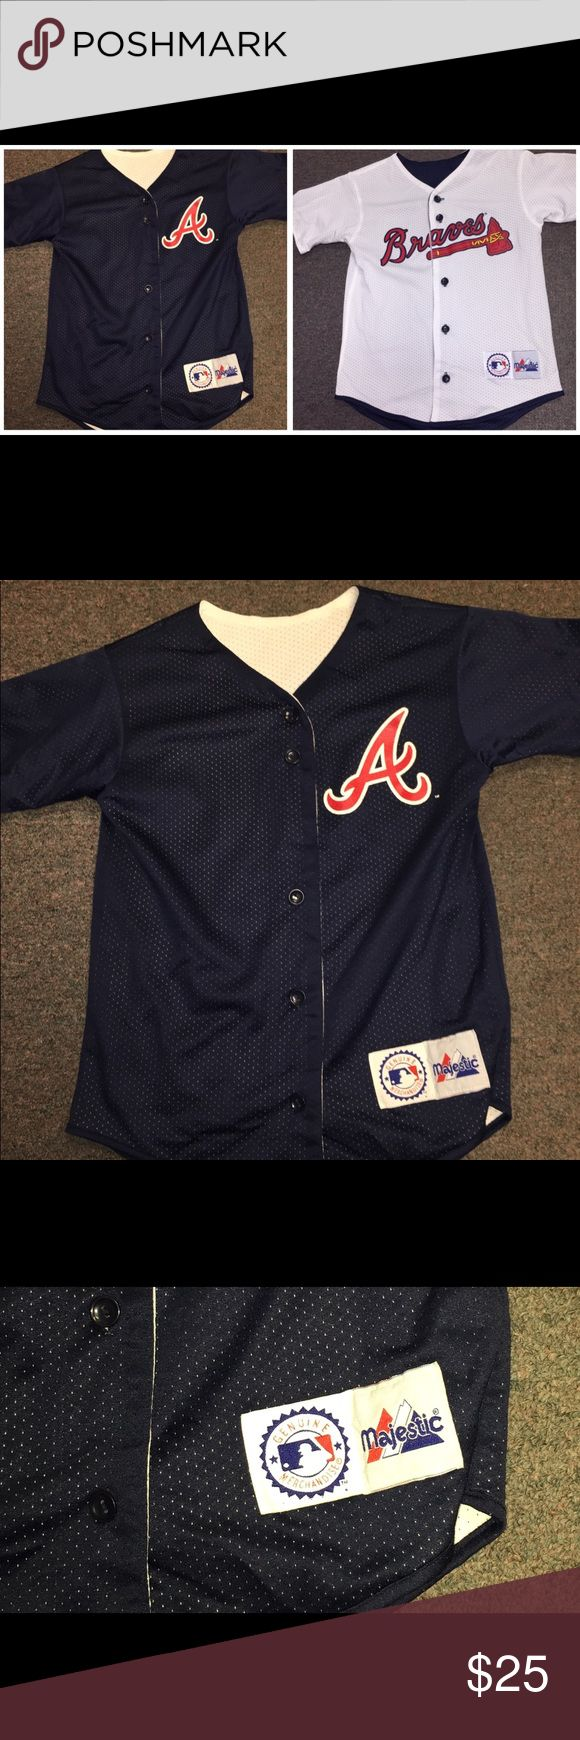 Atlanta Braves MLB REVERSIBLE BASEBALL JERSEY SZ M ATLANTA BRAVES Reversible Jersey. Genuine Major League Baseball Jersey by Majestic. Chest and waist measures 30 inches.  092617–12 drnerds mlb Shirts & Tops